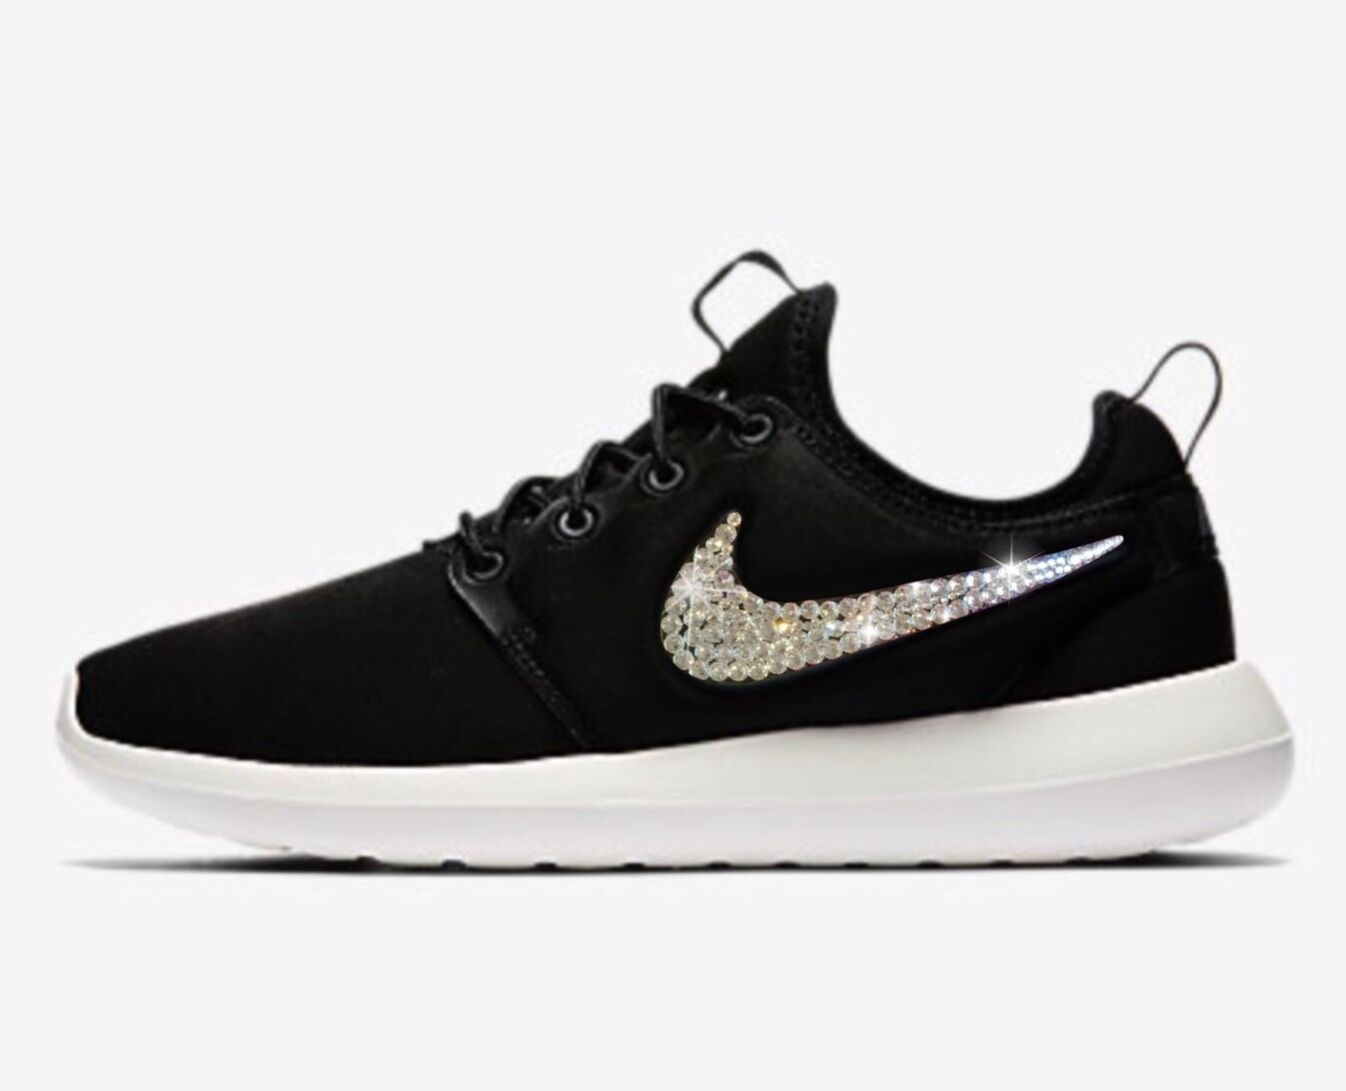 Bling Nike Roshe Two Shoes w/ Swarovski Crystals * Black * with Bedazzled Swoosh